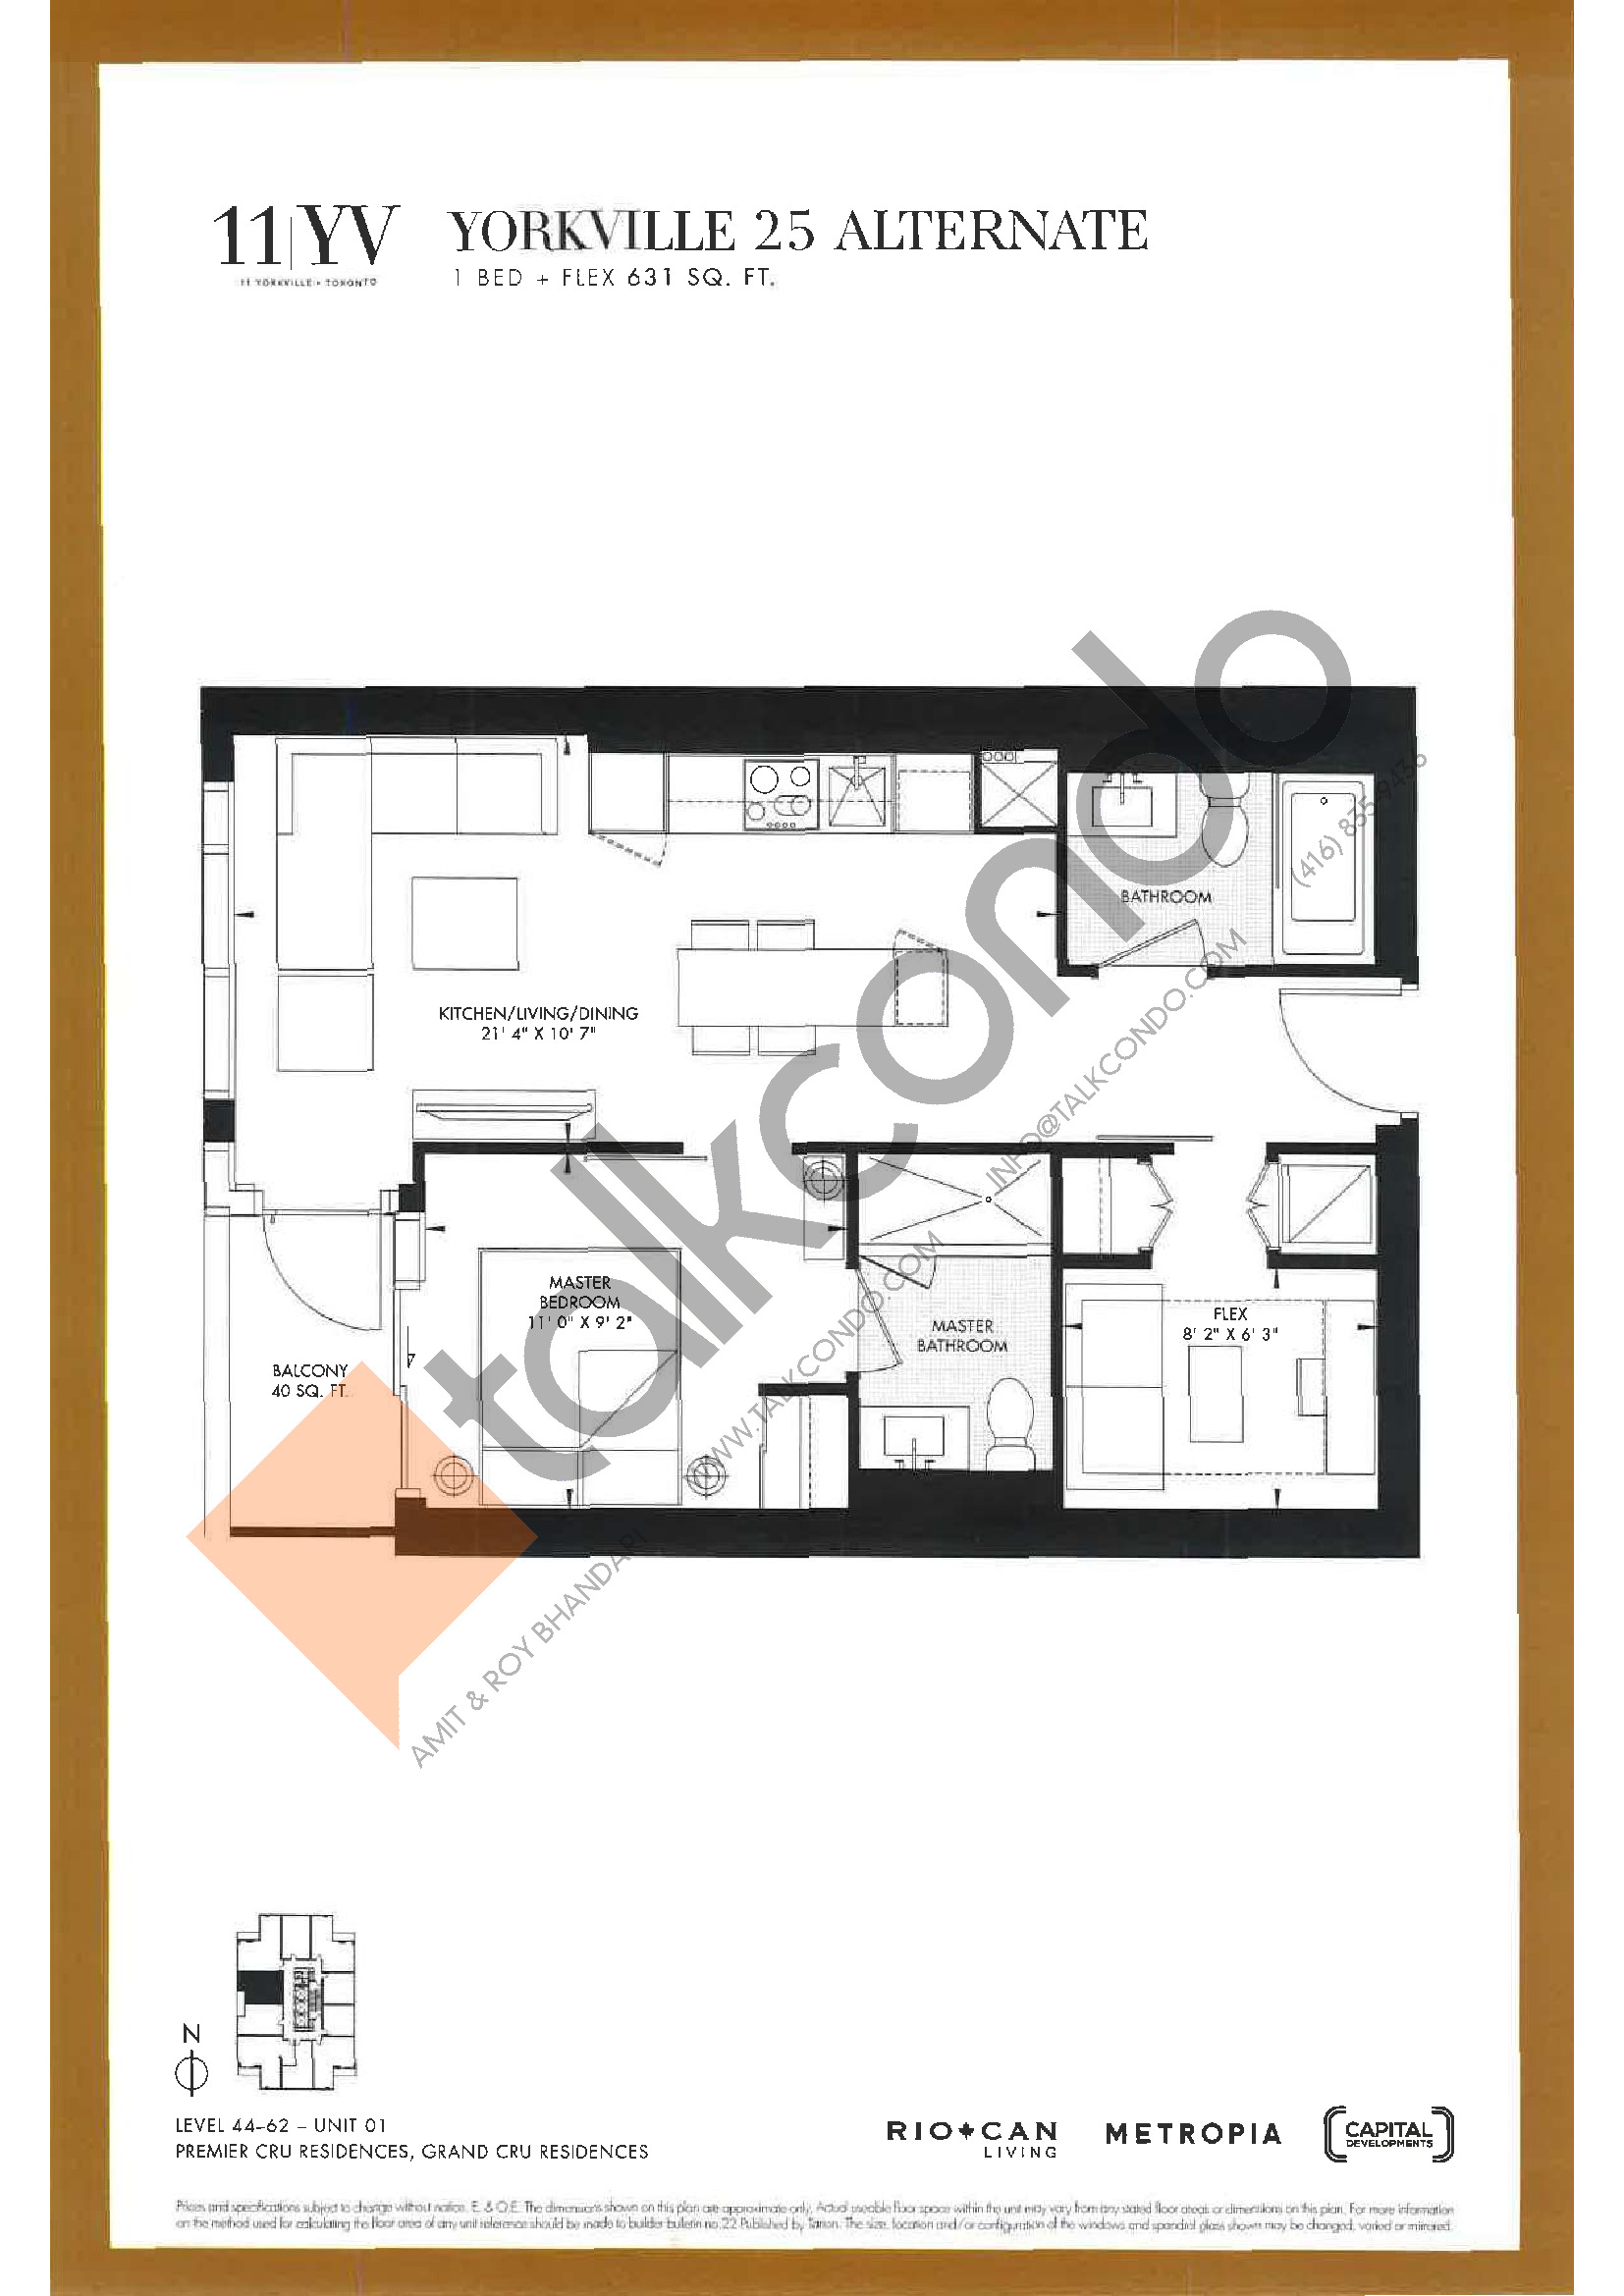 Yorkville 25 Alternate Floor Plan at 11YV Condos - 631 sq.ft